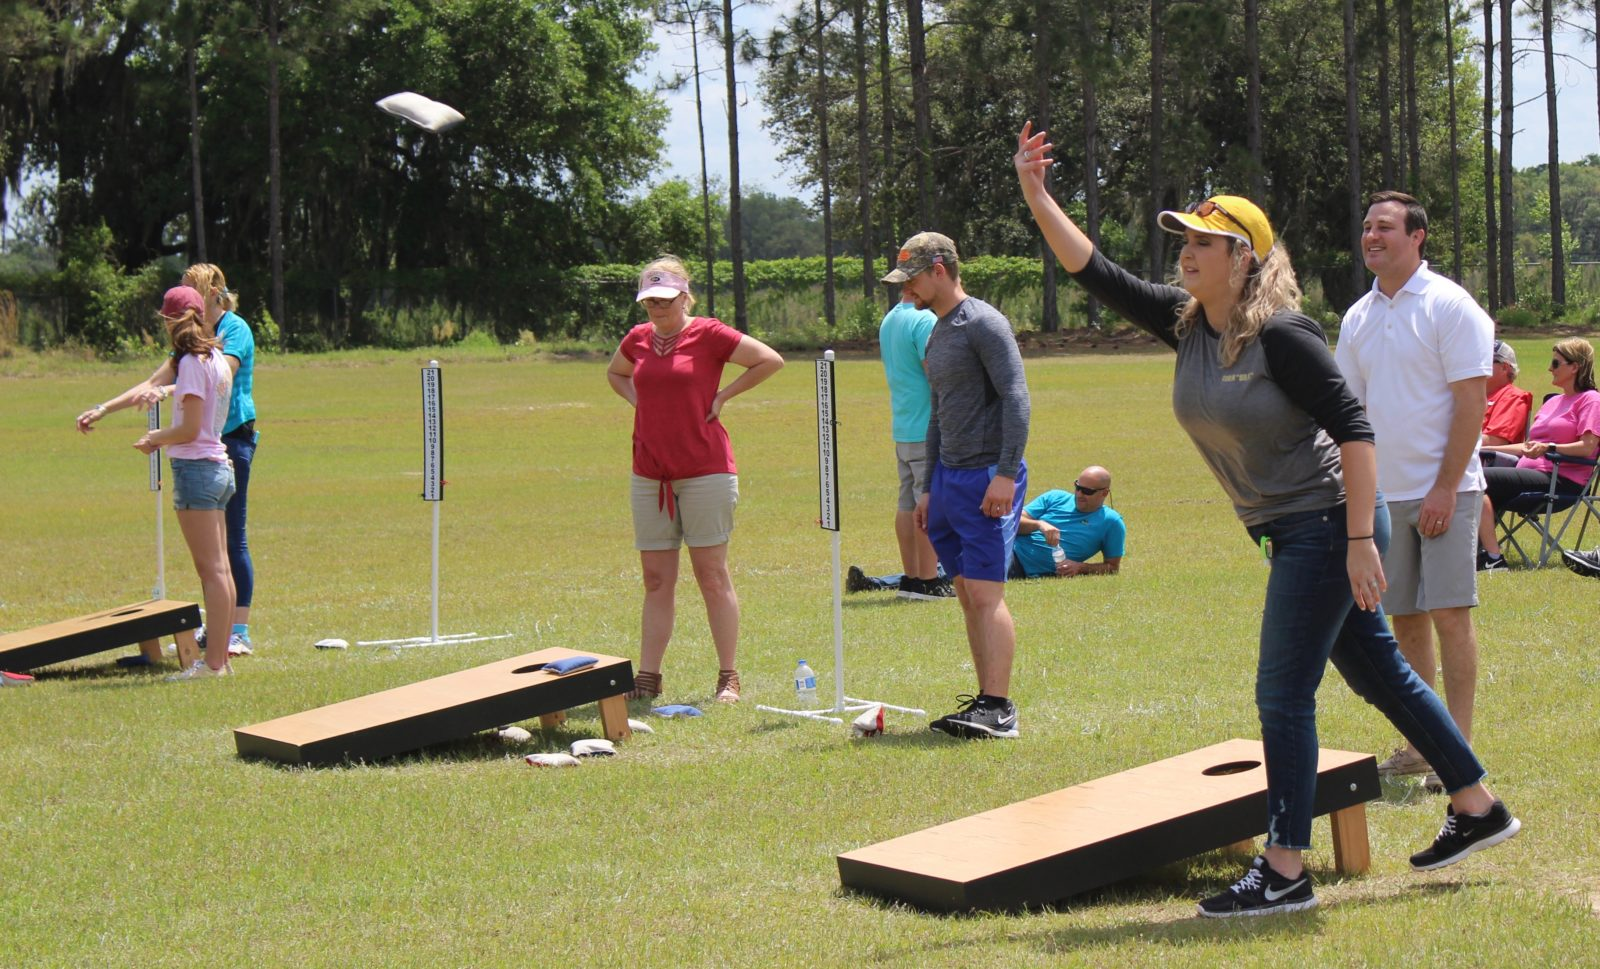 people participate in a cornhole tournament